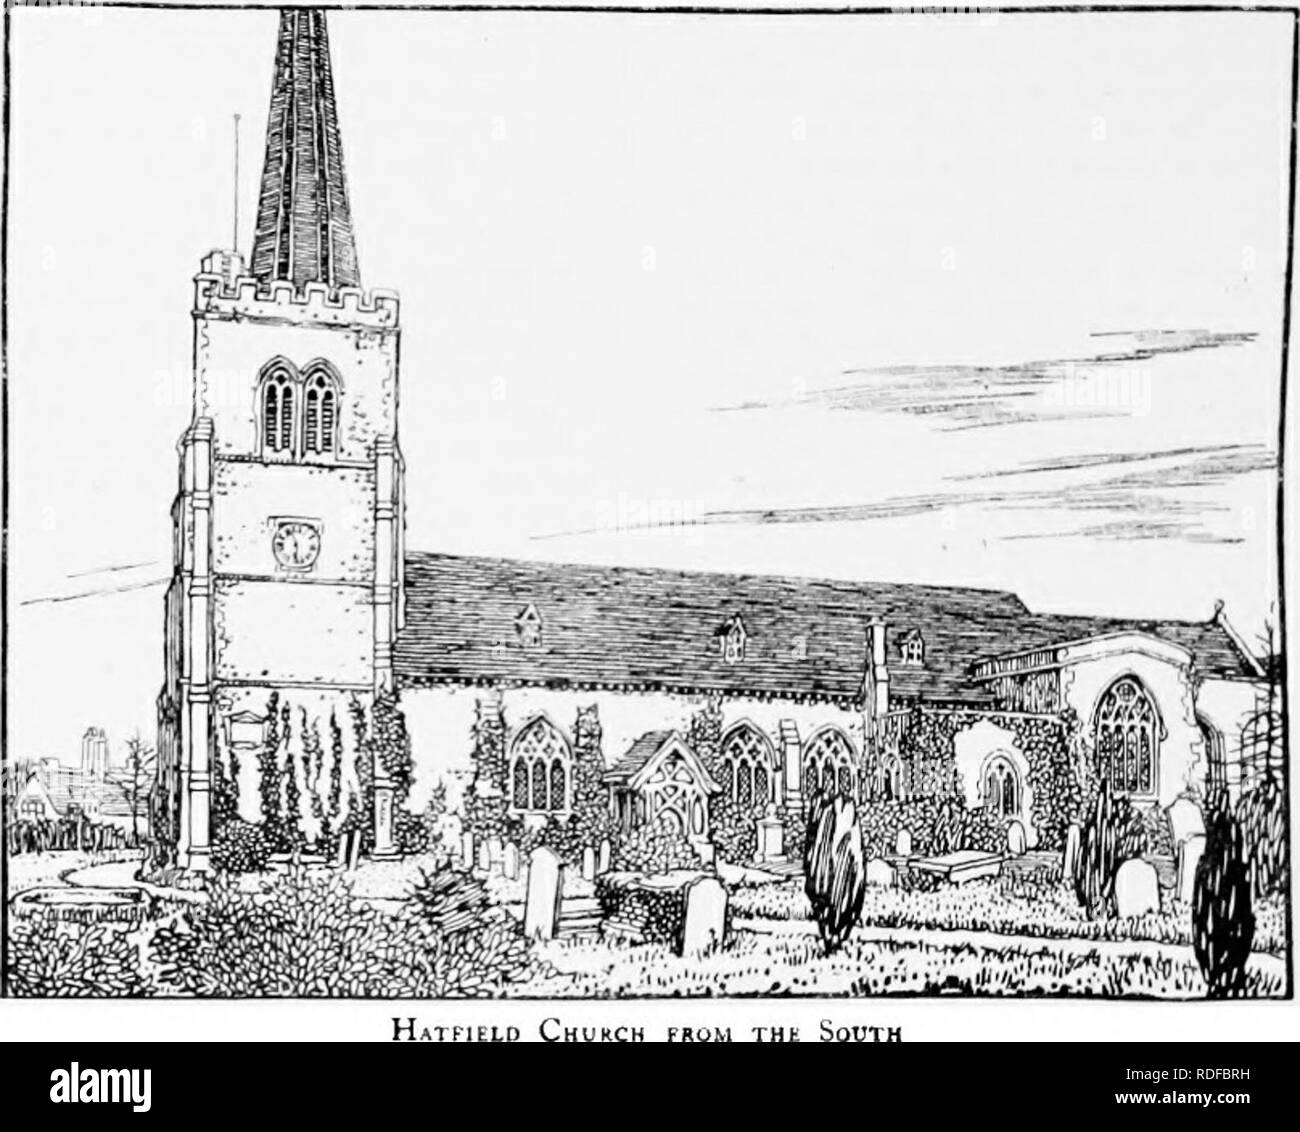 . The Victoria history of the county of Hertford. Natural history. A HISTORY OF HERTFORDSHIRE doors all have four-centred heads. The two-centred arch at the west end,opening into thesouth transept, is of the i 3th century, of three continuous chamfered orders, and immediately to the south of it is a plain narrow doorway of the 15th century, also leading to the south transept, which was inserted when the chapel was widened. In the east wall of the chapel are two brackets, each carved with an angel bearing a shield, one on each side of the east window. The roof retains much of its late 1 5th-cen - Stock Image